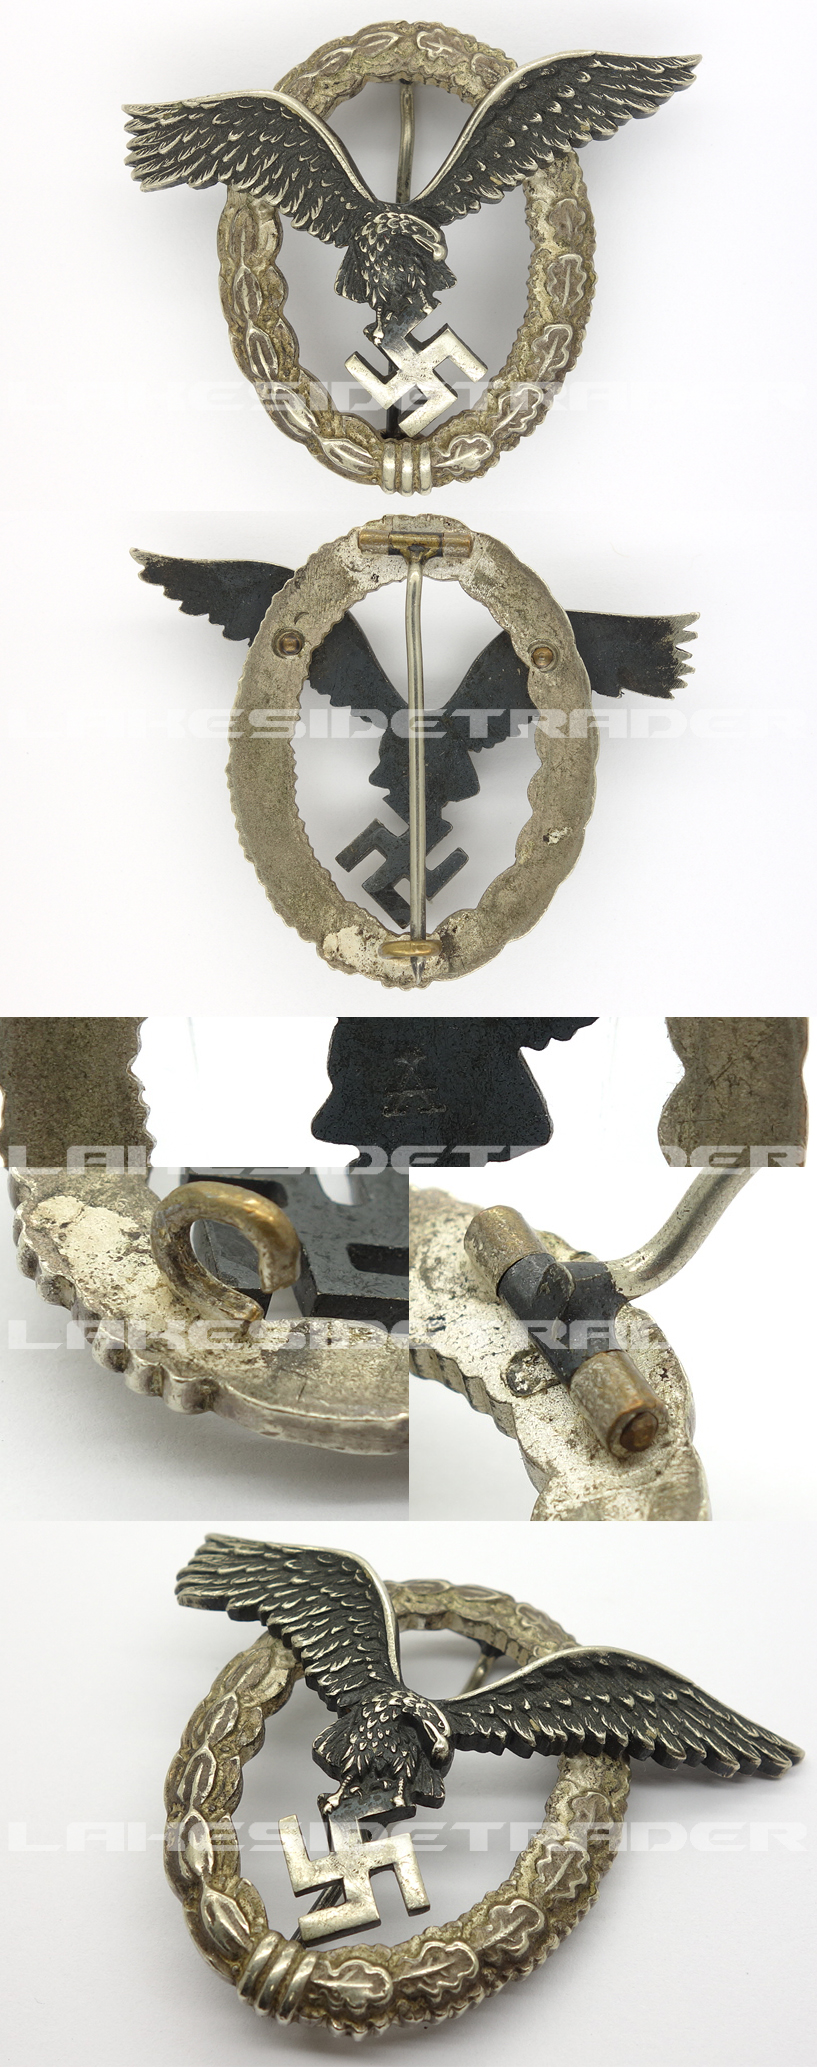 Luftwaffe Pilot Badge by Assmann